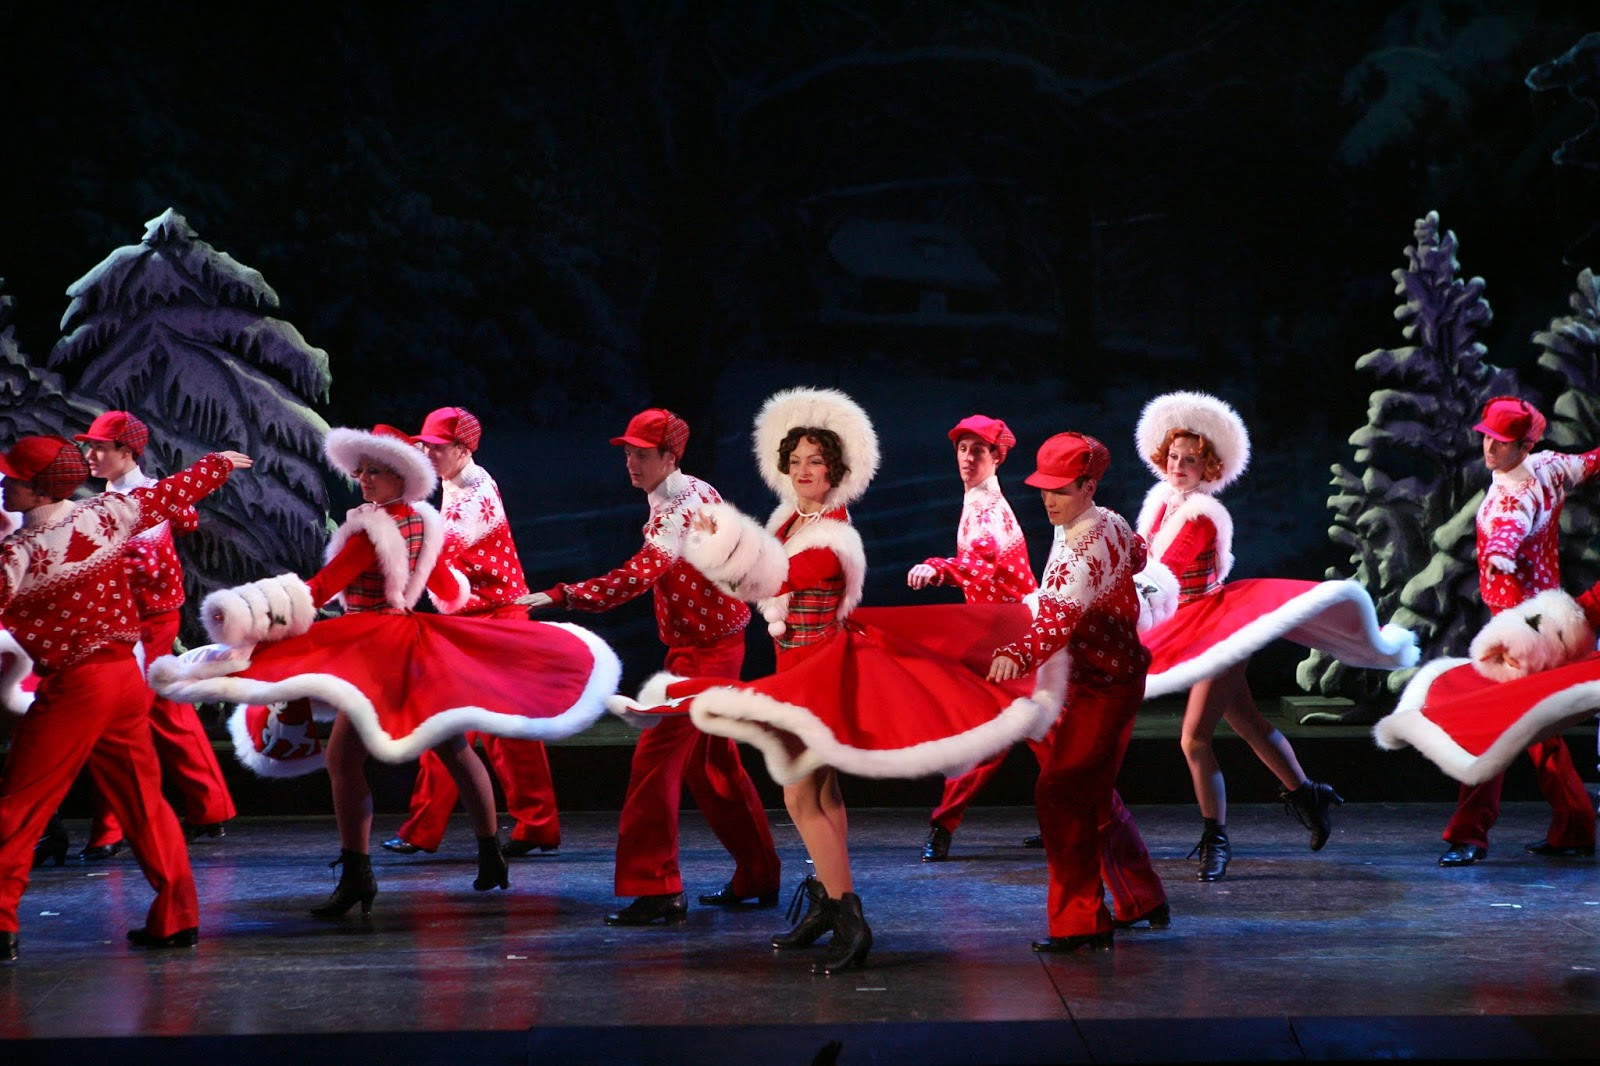 The Cast Of White Christmas.Ivring Berlin S White Christmas Full Cast Announced Pocket